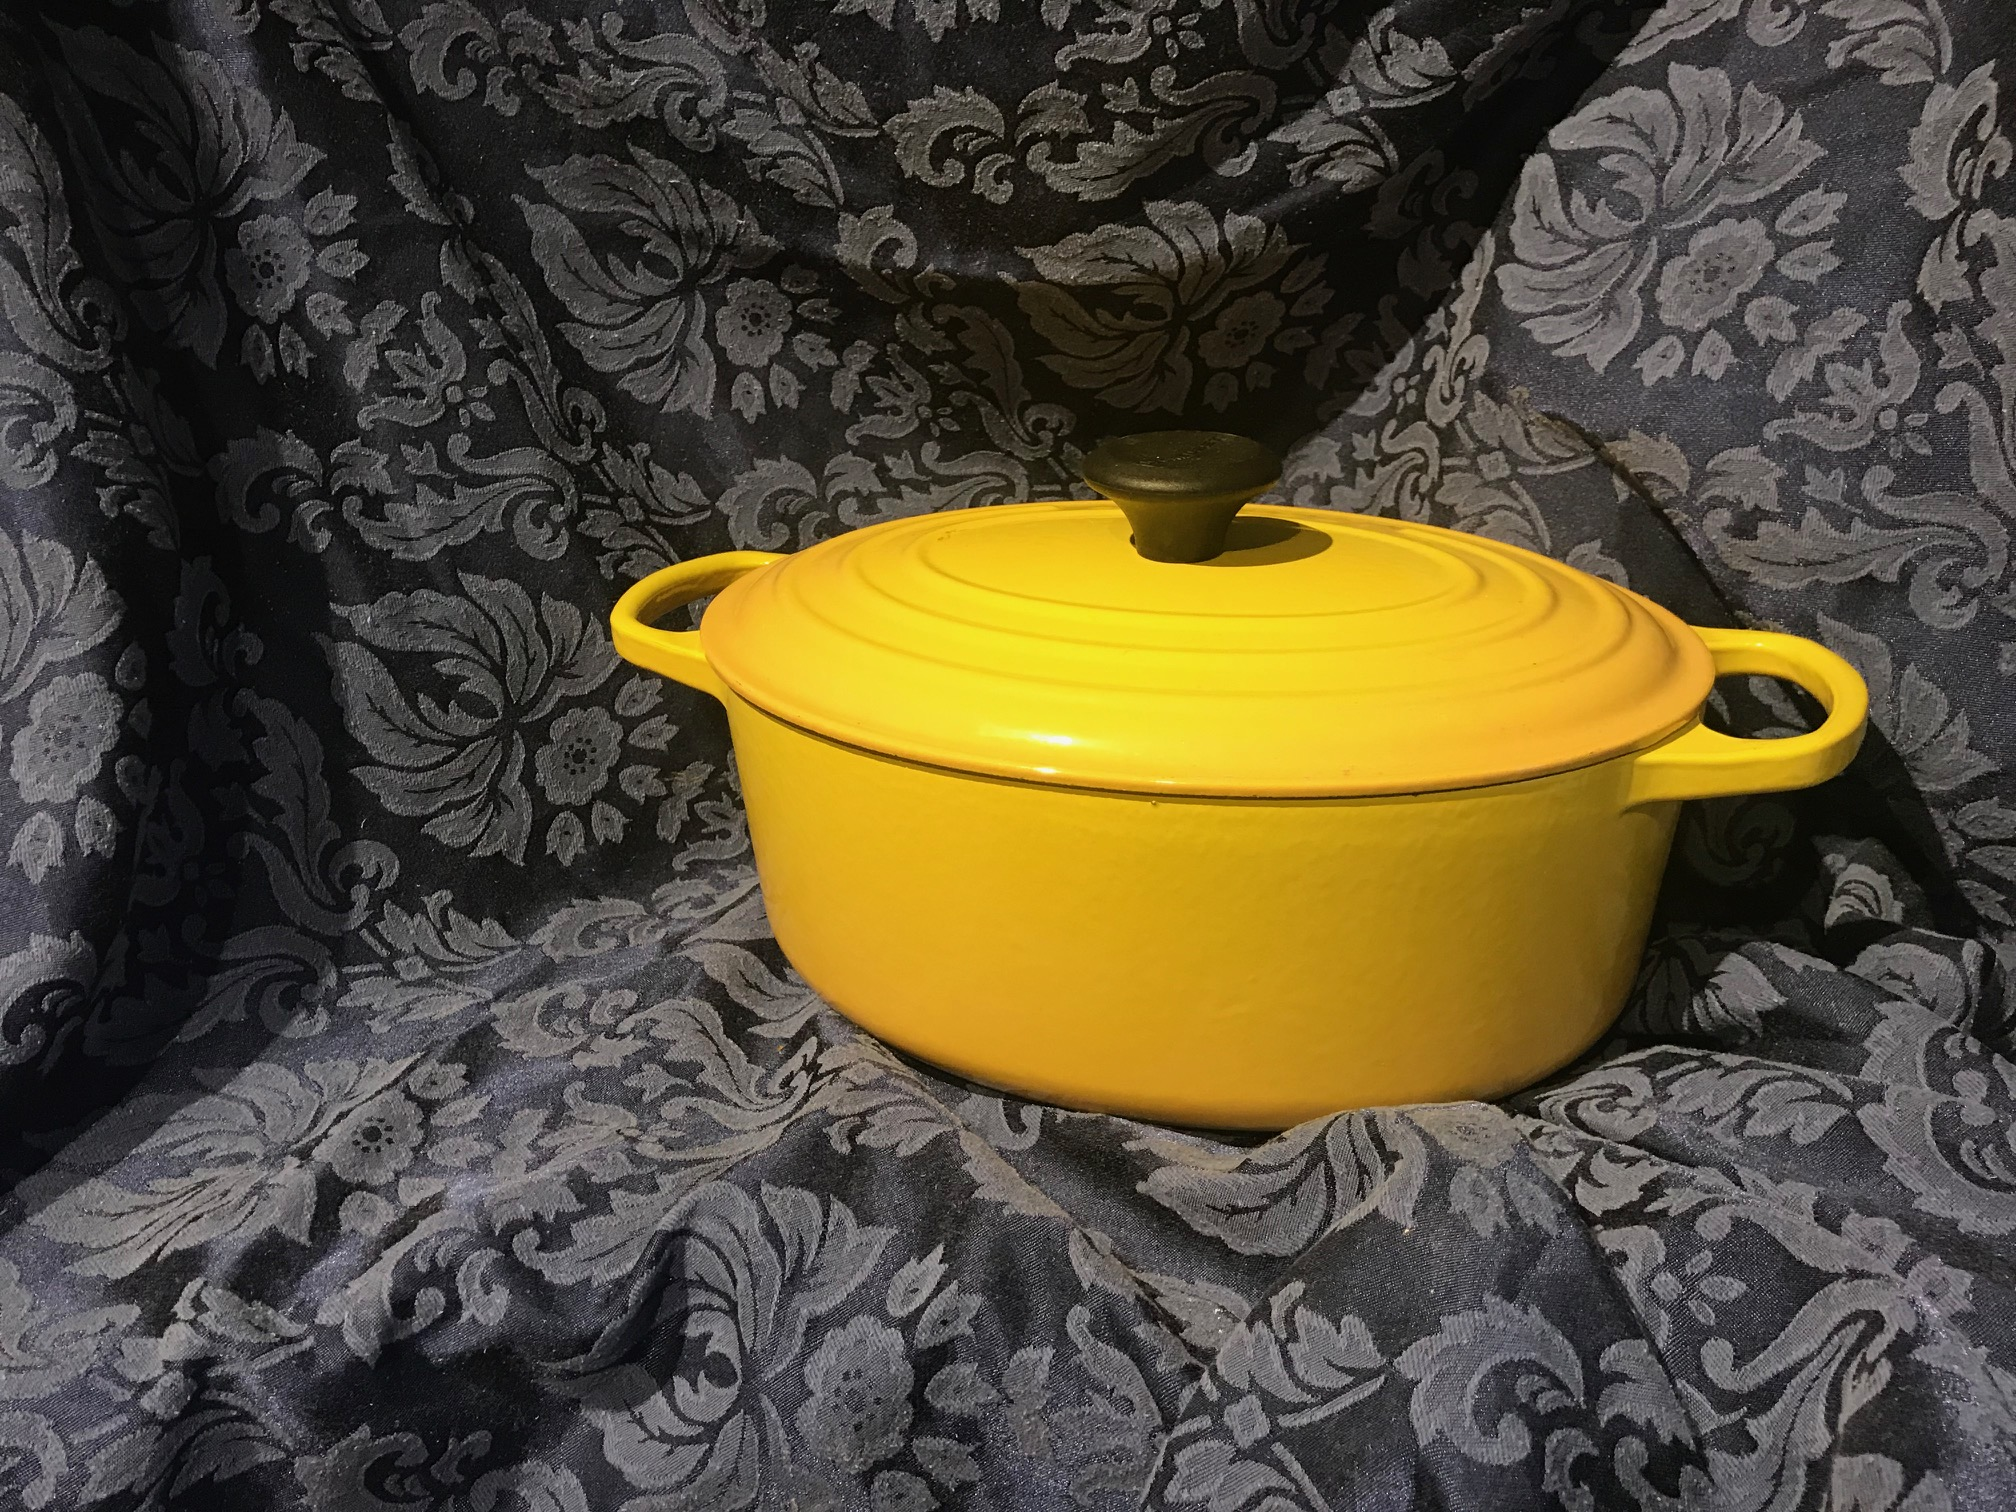 Made In France (c. 2013) Yellow Oval Le Creuset Enameled Cast Iron Casserole [#29]: 17,700 ppm Cadmium (a known carcinogen.)